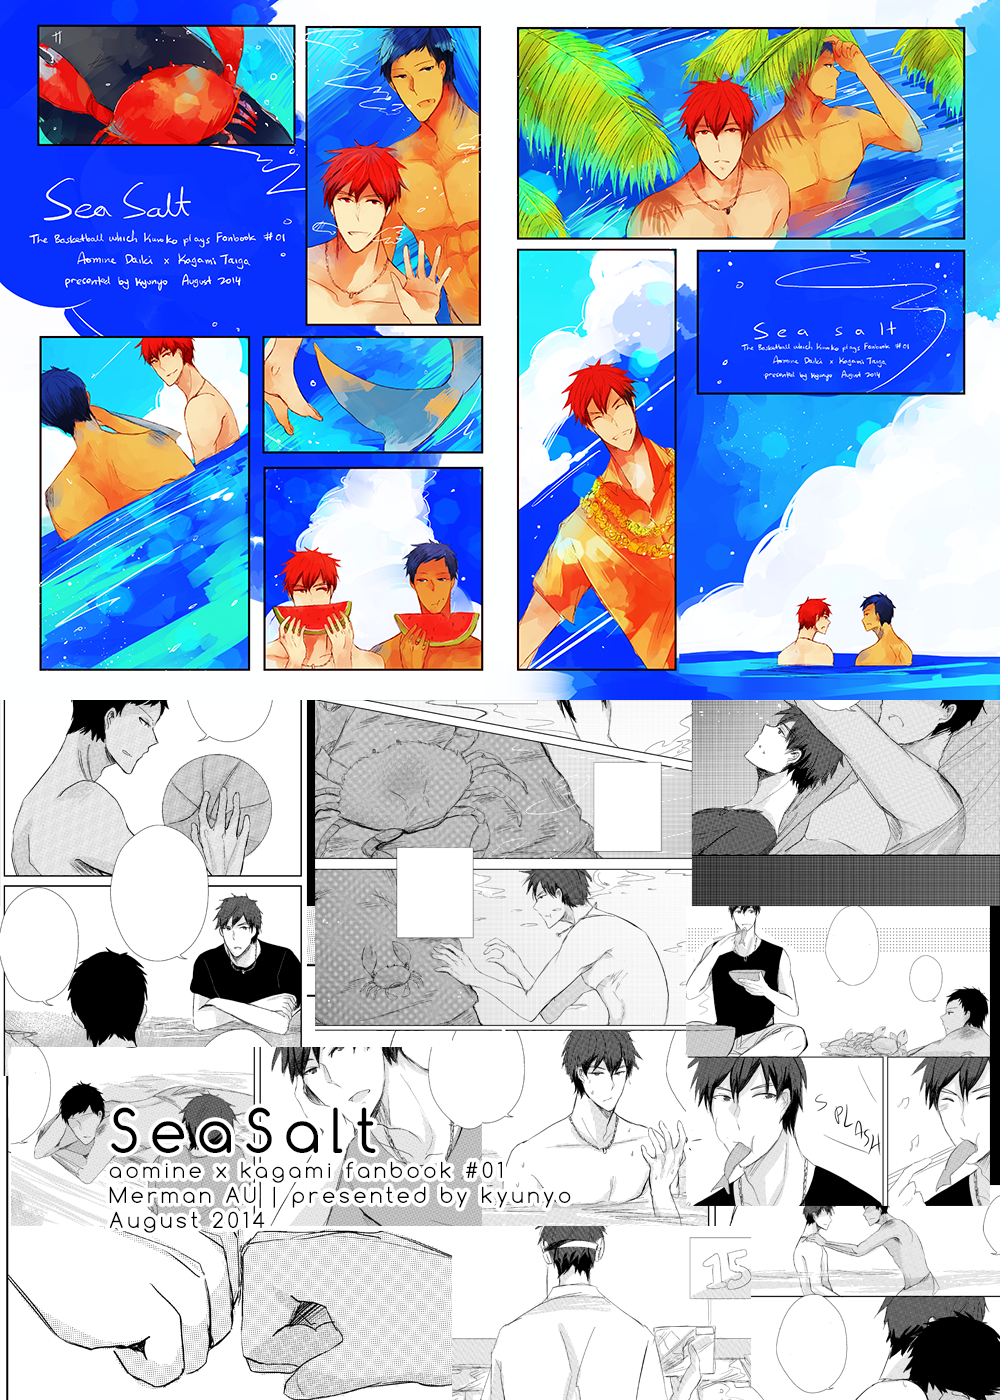 Seasalt doujinshi preorders open by kyunyo